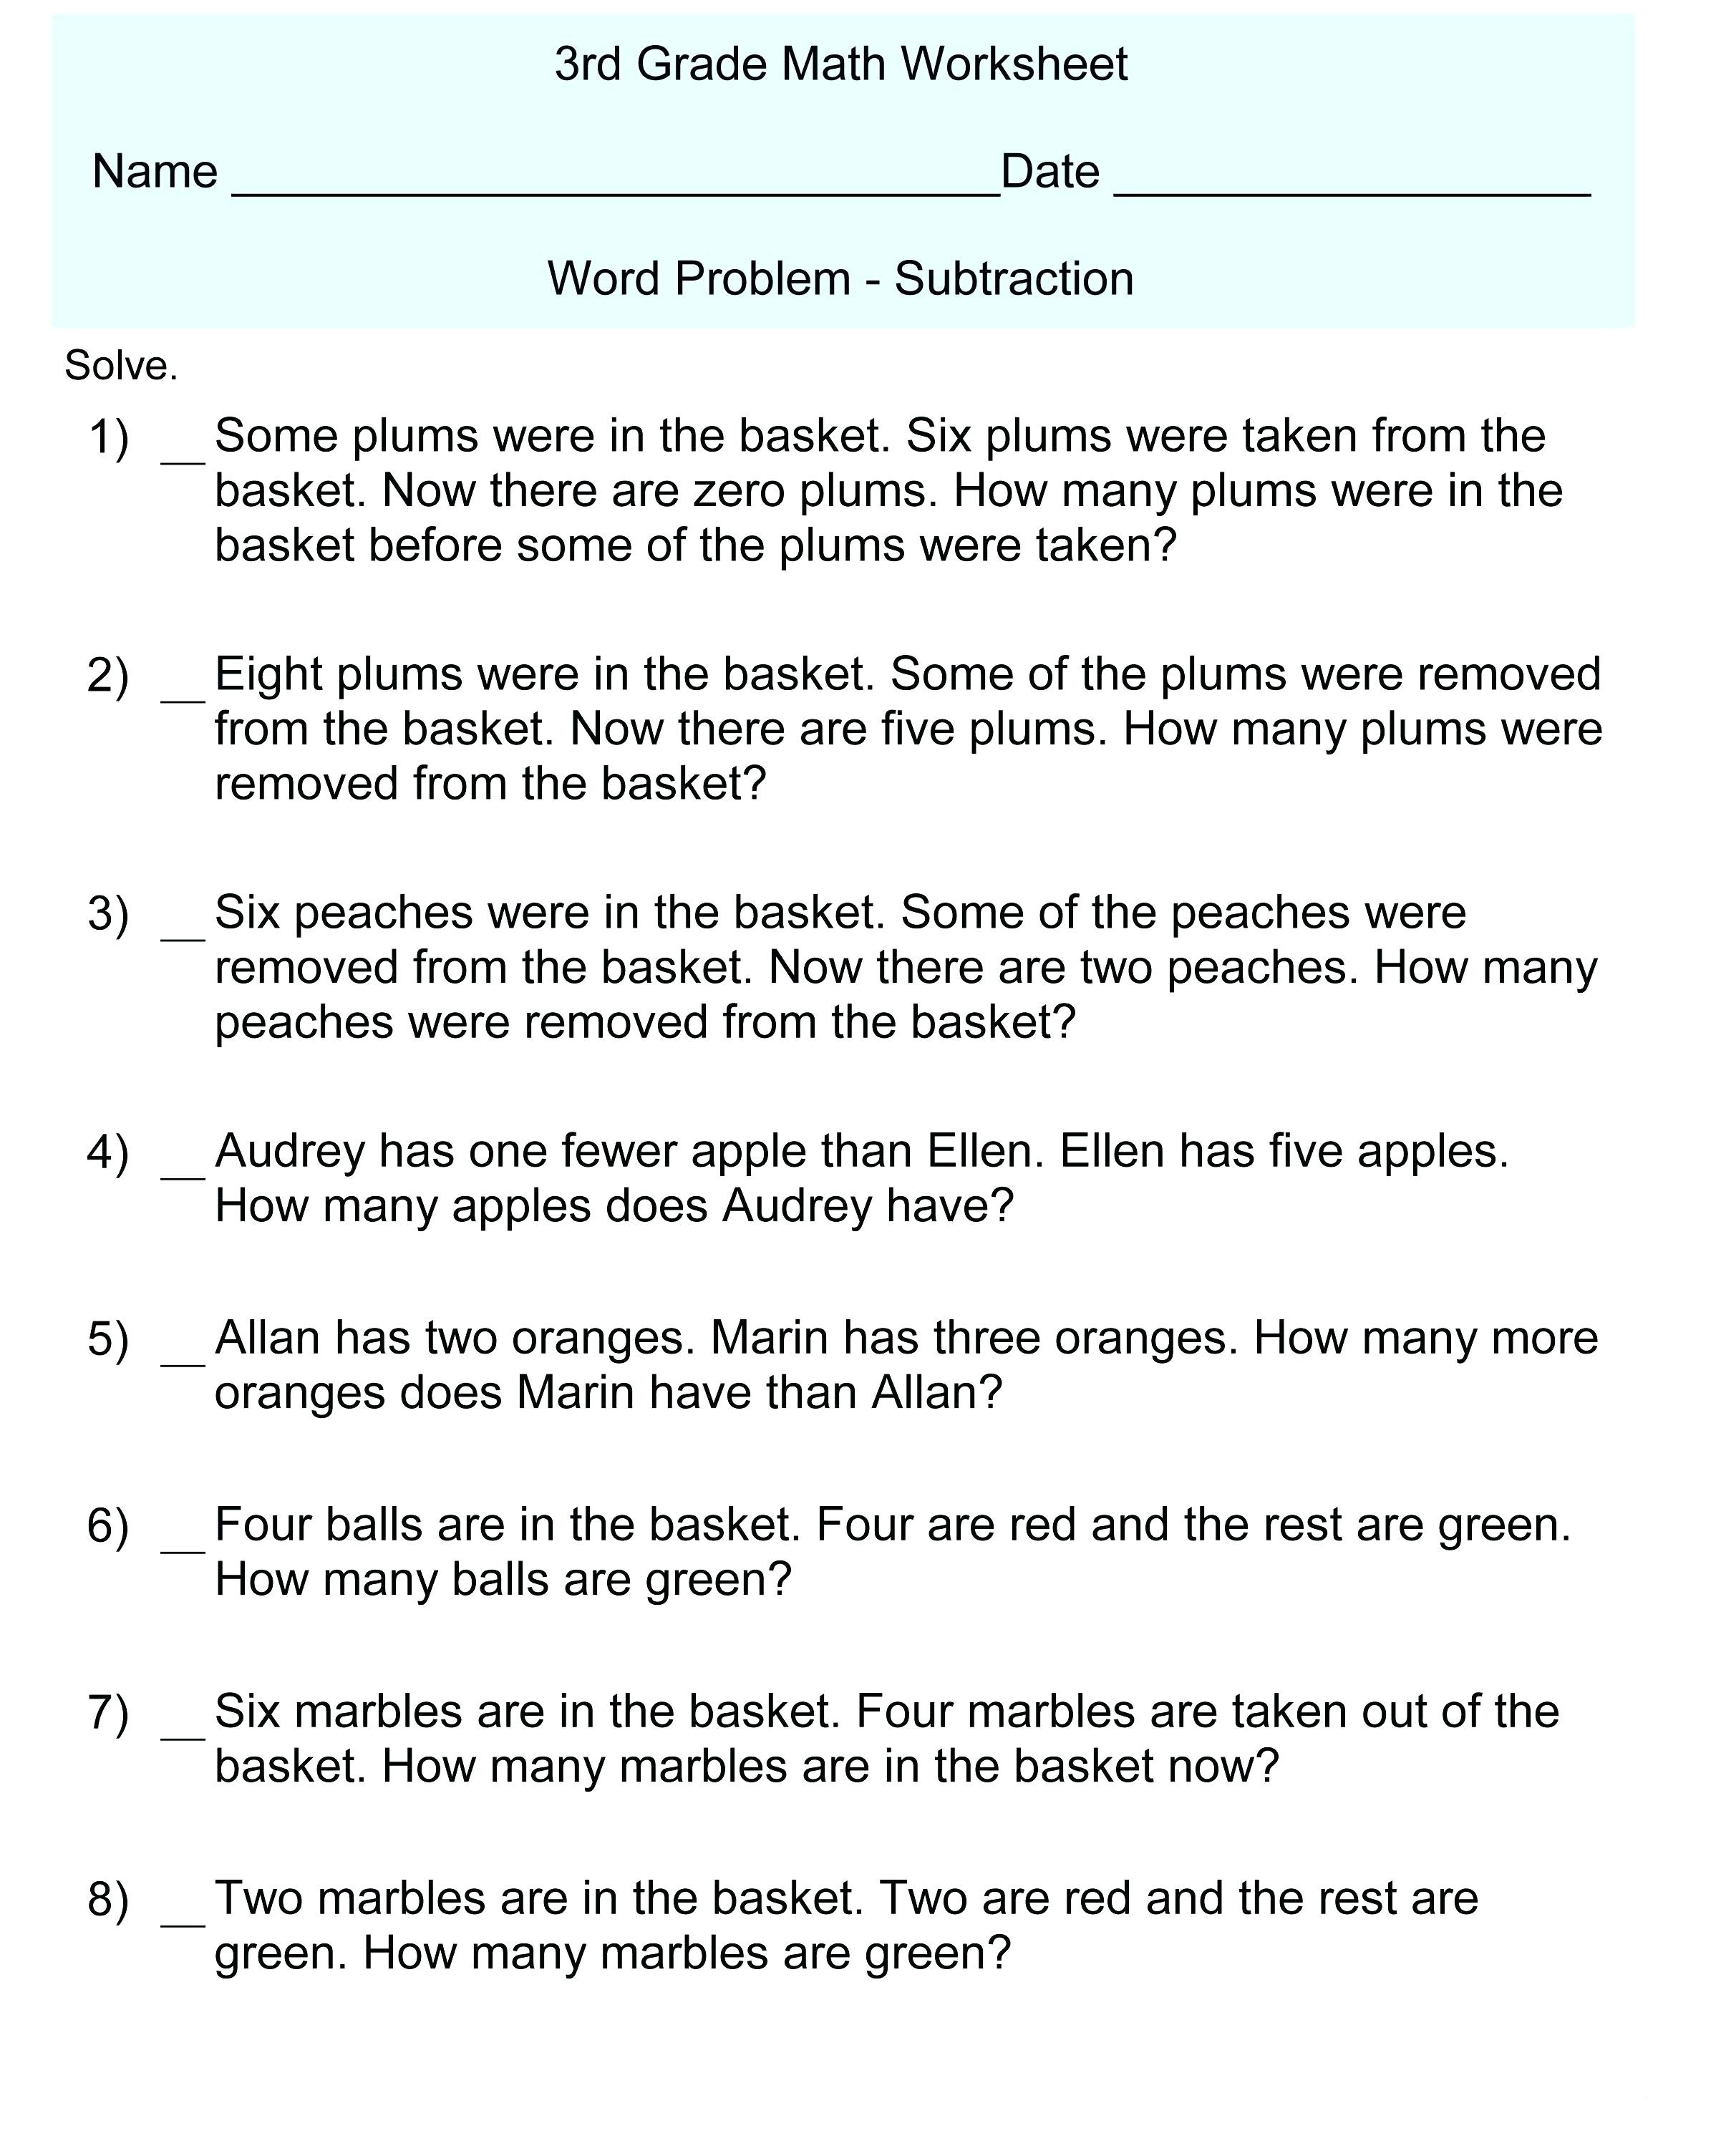 3rd Grade Math Equations Worksheets - DIY Worksheet